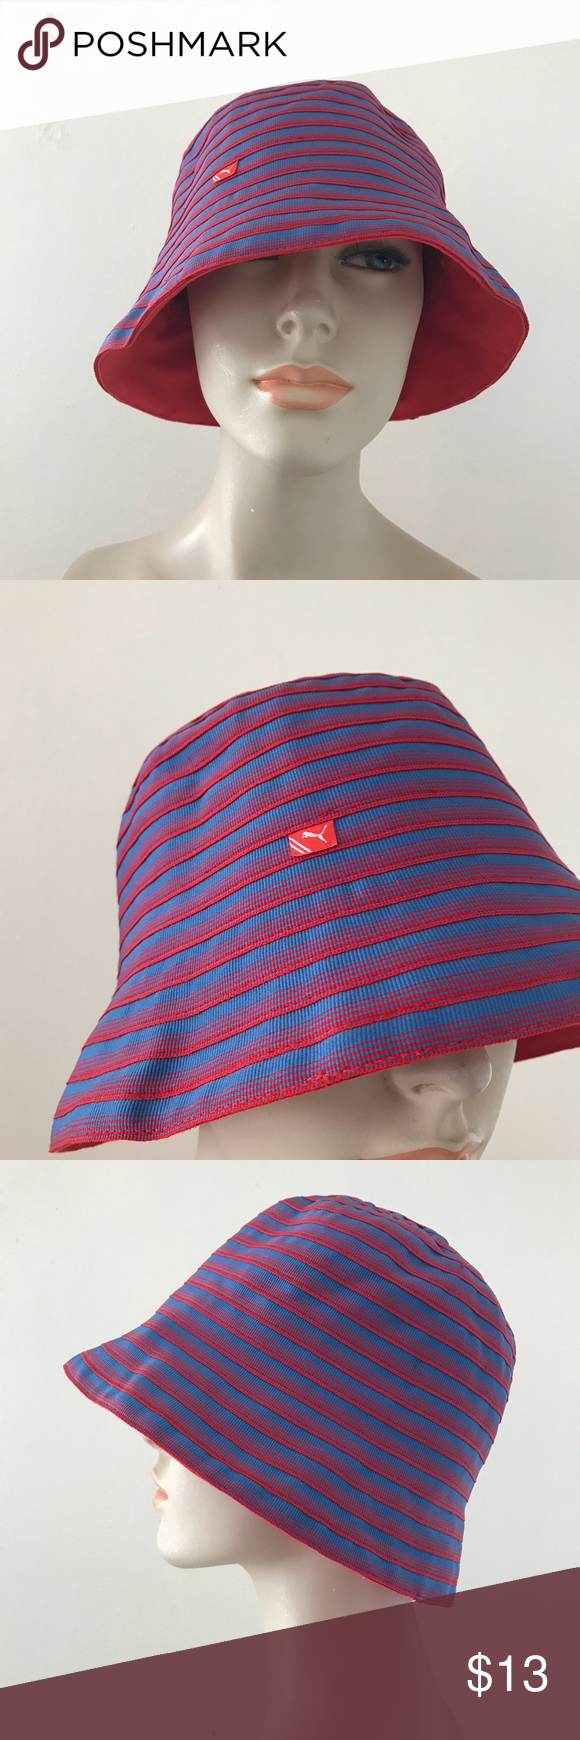 b69cf37fbca1c Puma Reversible Red Blue Striped Sun Bucket Hat OS Puma Reversible hat Red    blue textured stripes on one side and solid red on the other Excellent ...